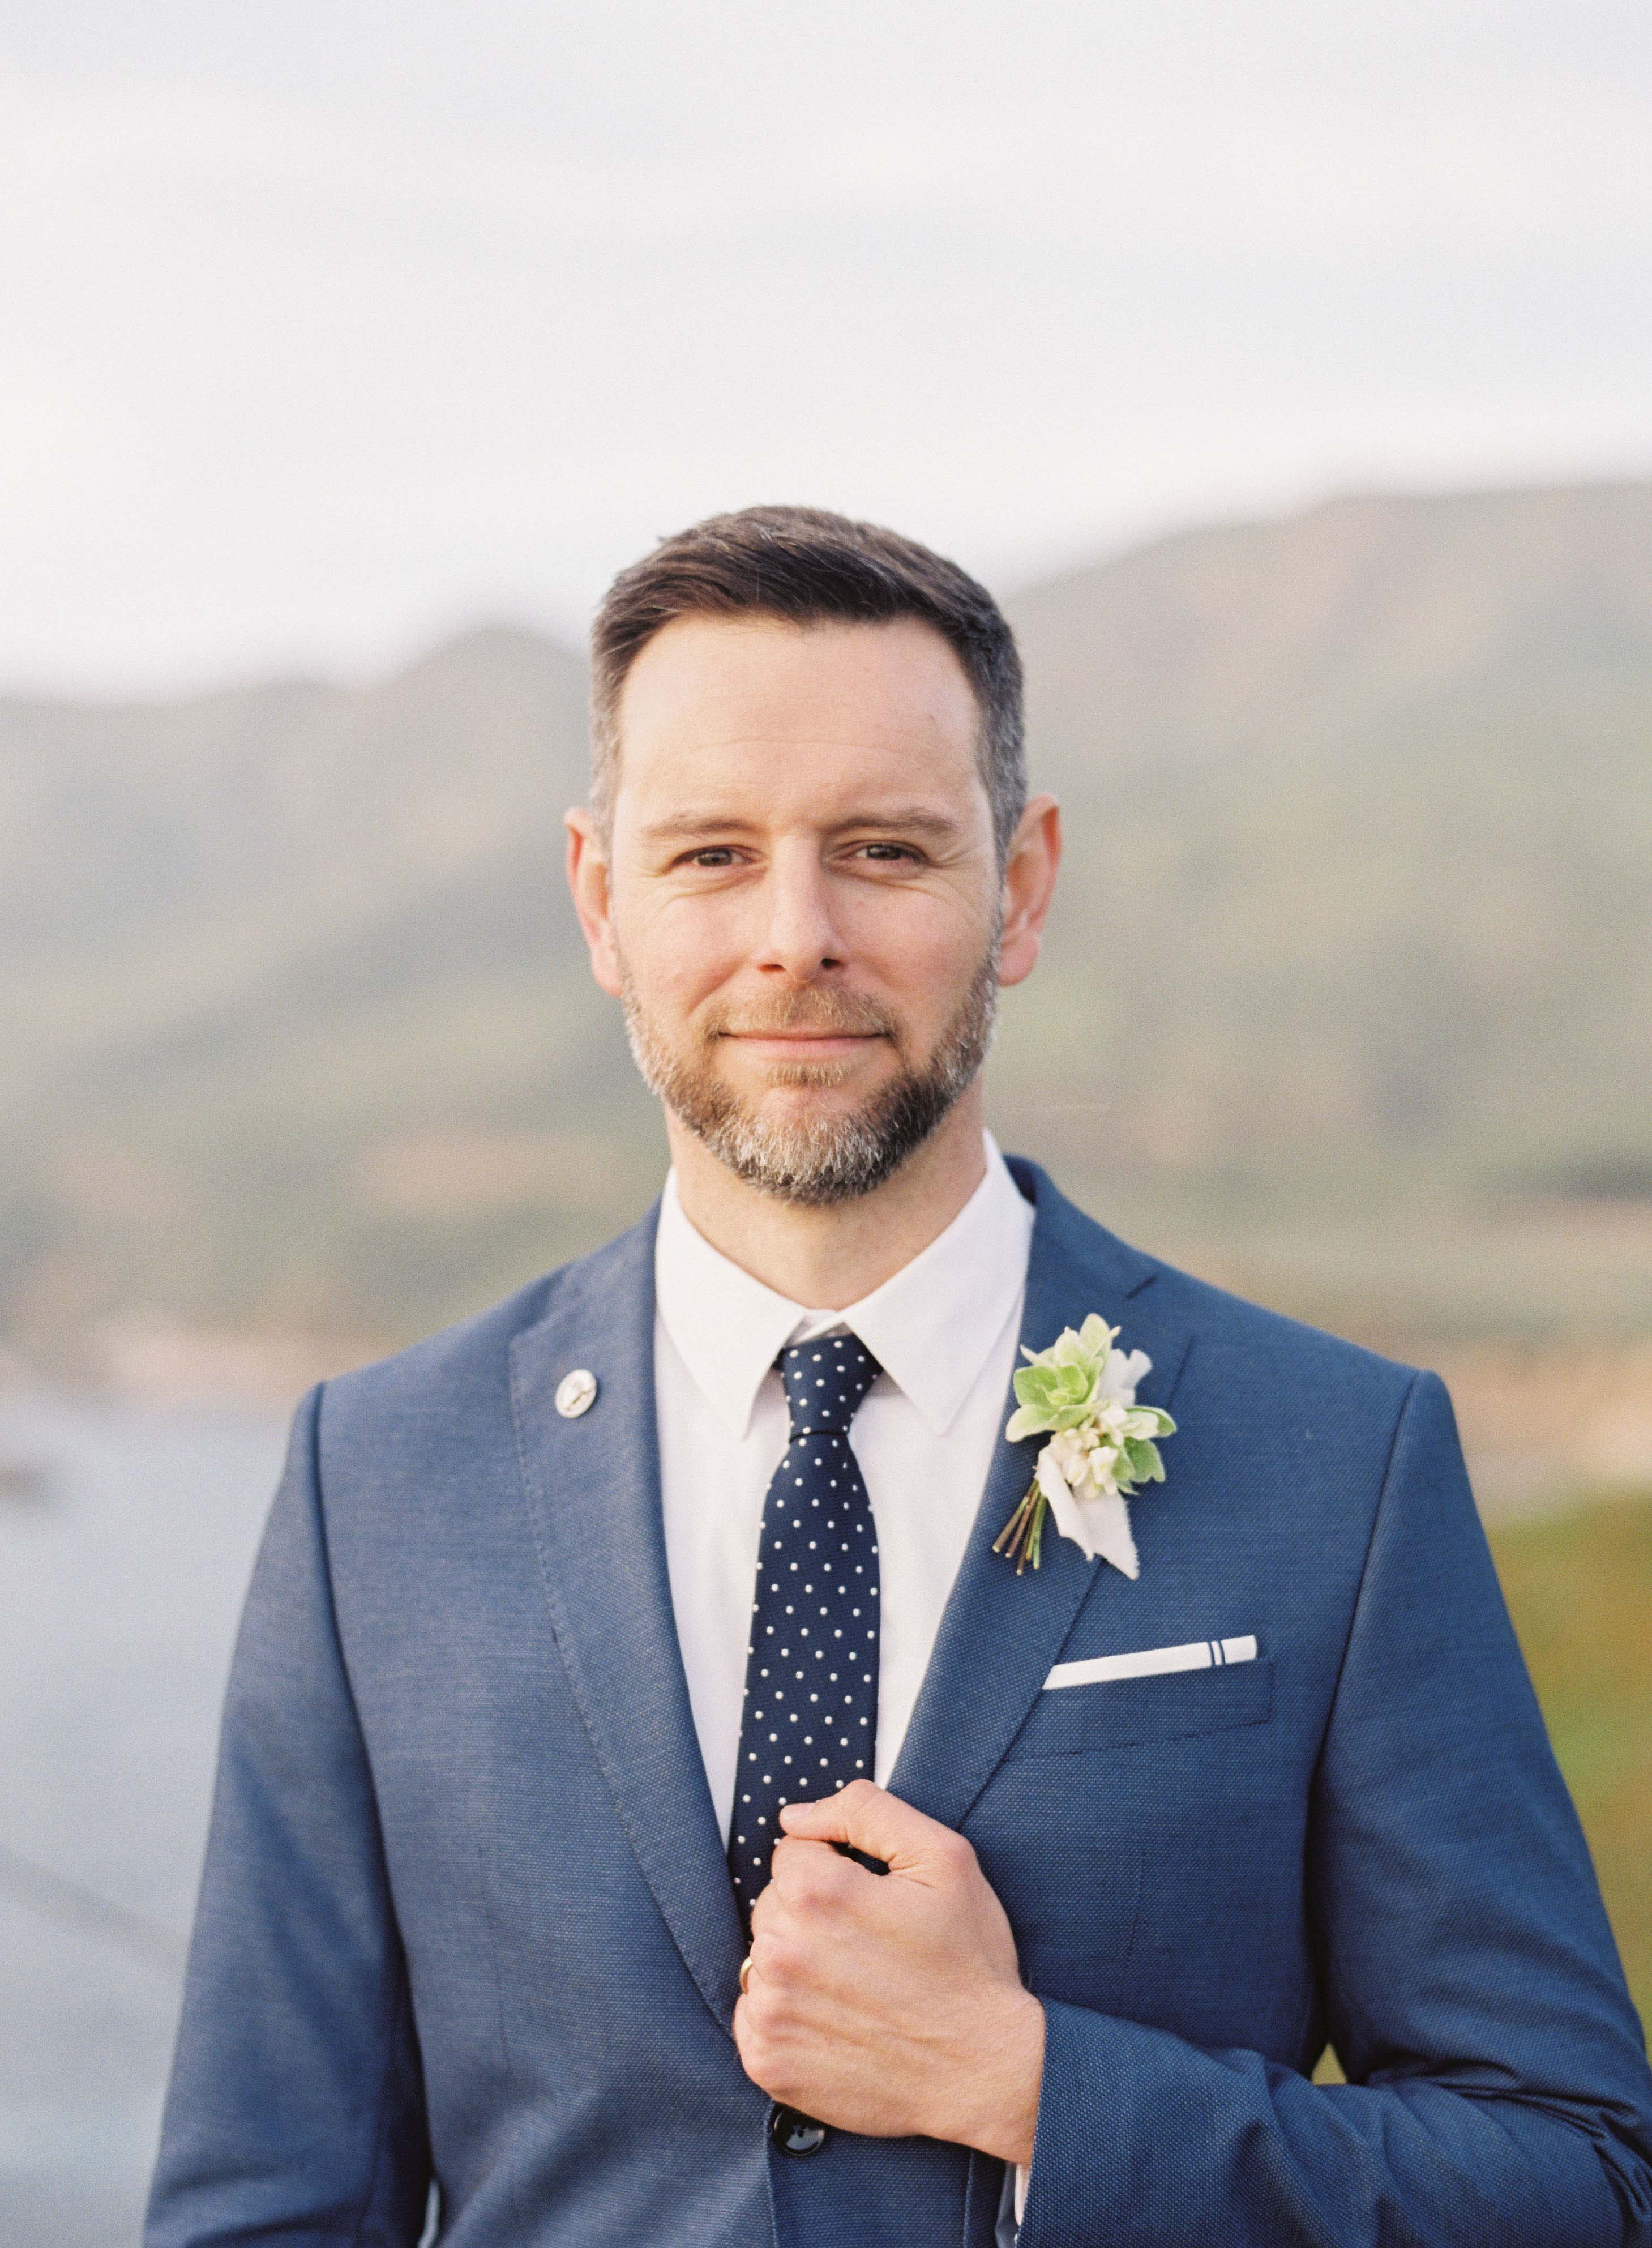 groom wearing navy blue suit and tie with polkadots